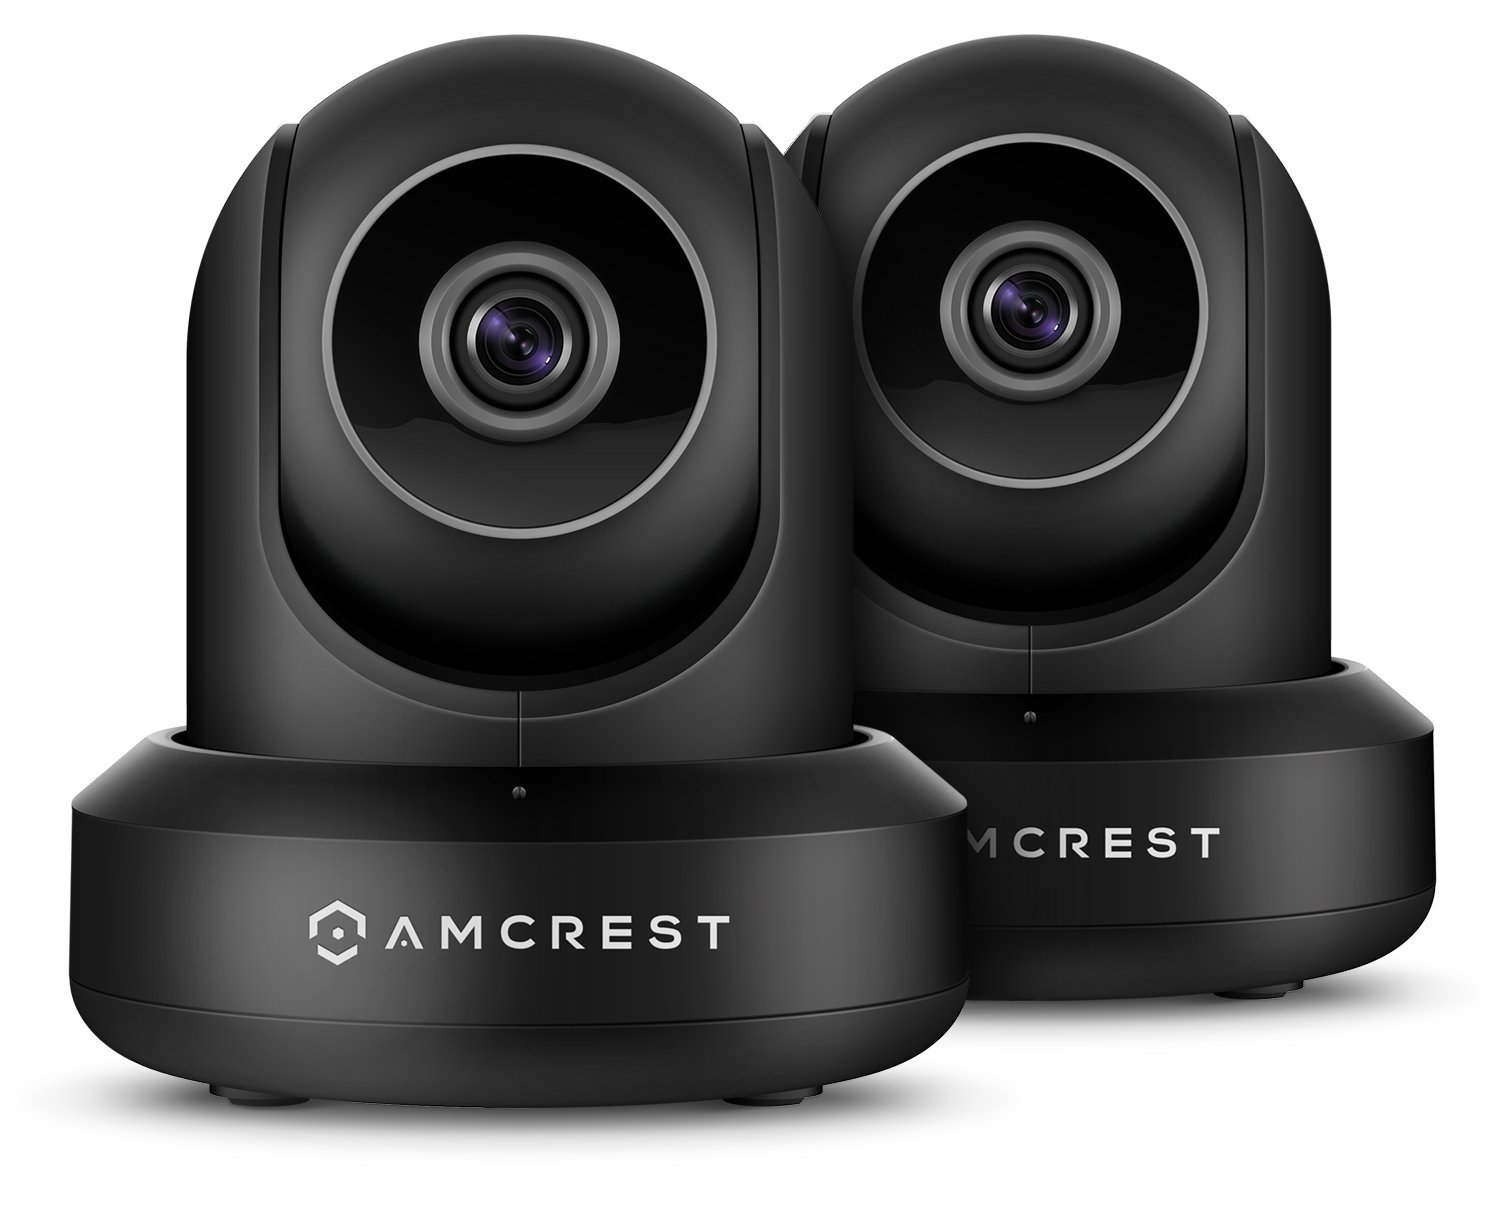 Amcrest 2-Pack 1080p WiFi Camera Indoor, 2MP Pan/Tilt Home Security Camera, Auto-Tracking, Motion & Audio Detection…